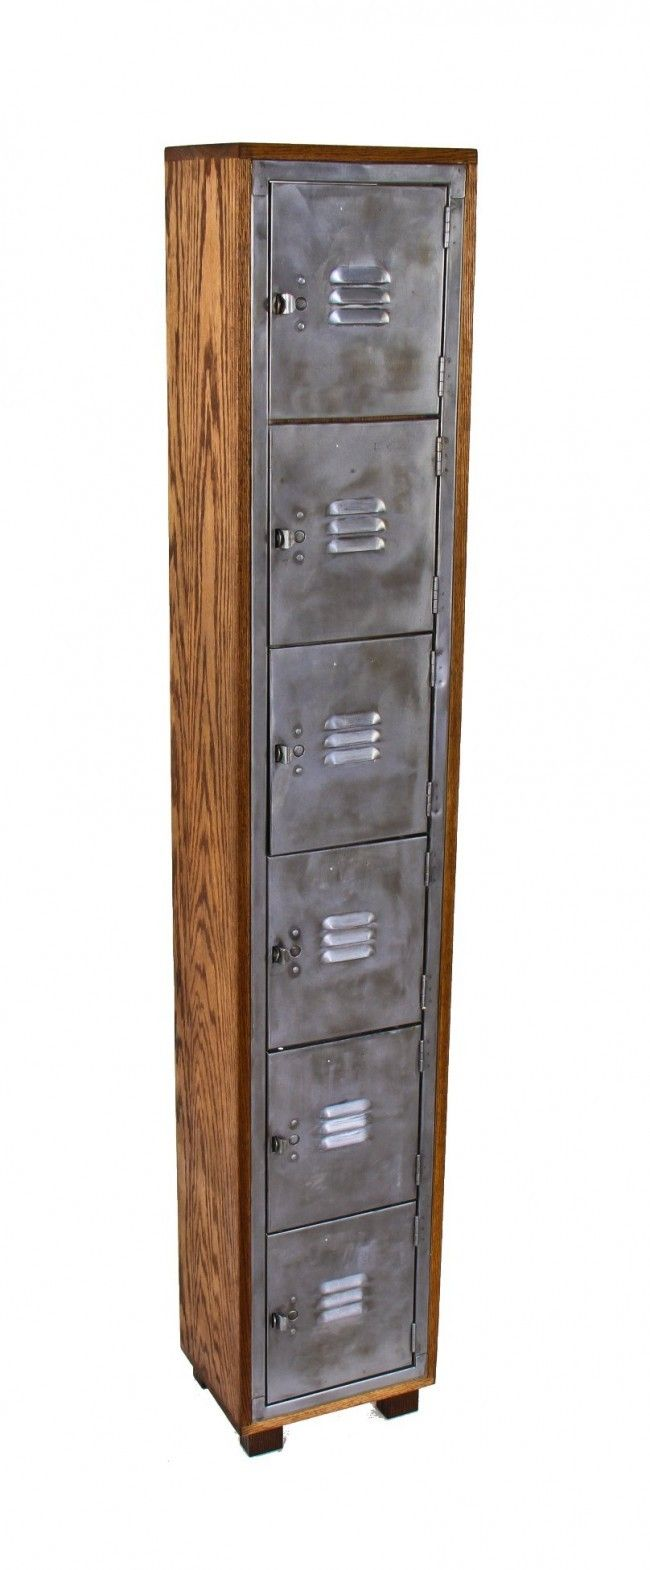 repurposed vintage american industrial cold-rolled heavy gauge steel compartmentalized freestanding locker with newly added oak wood cabinet